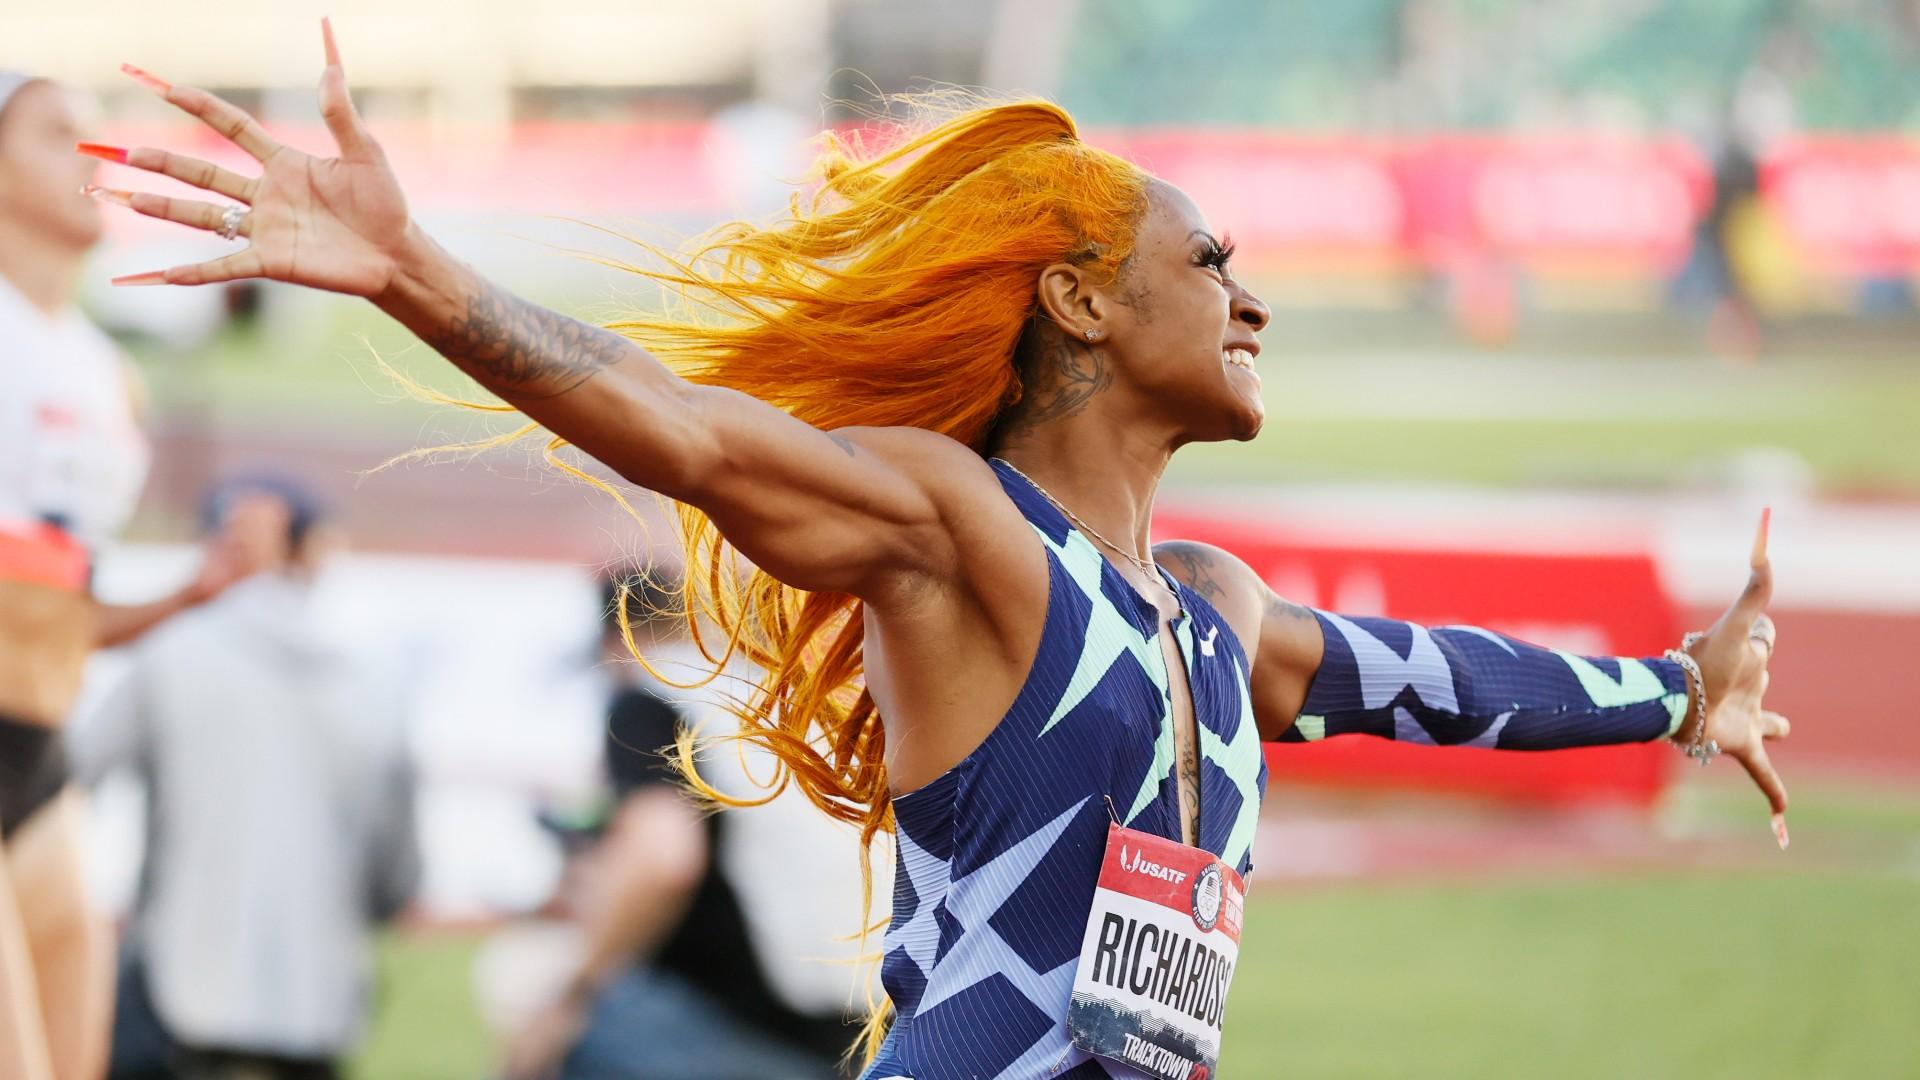 Excluding sprint star Sha'Carri Richardson from the US Olympic relay team is a foolish decision